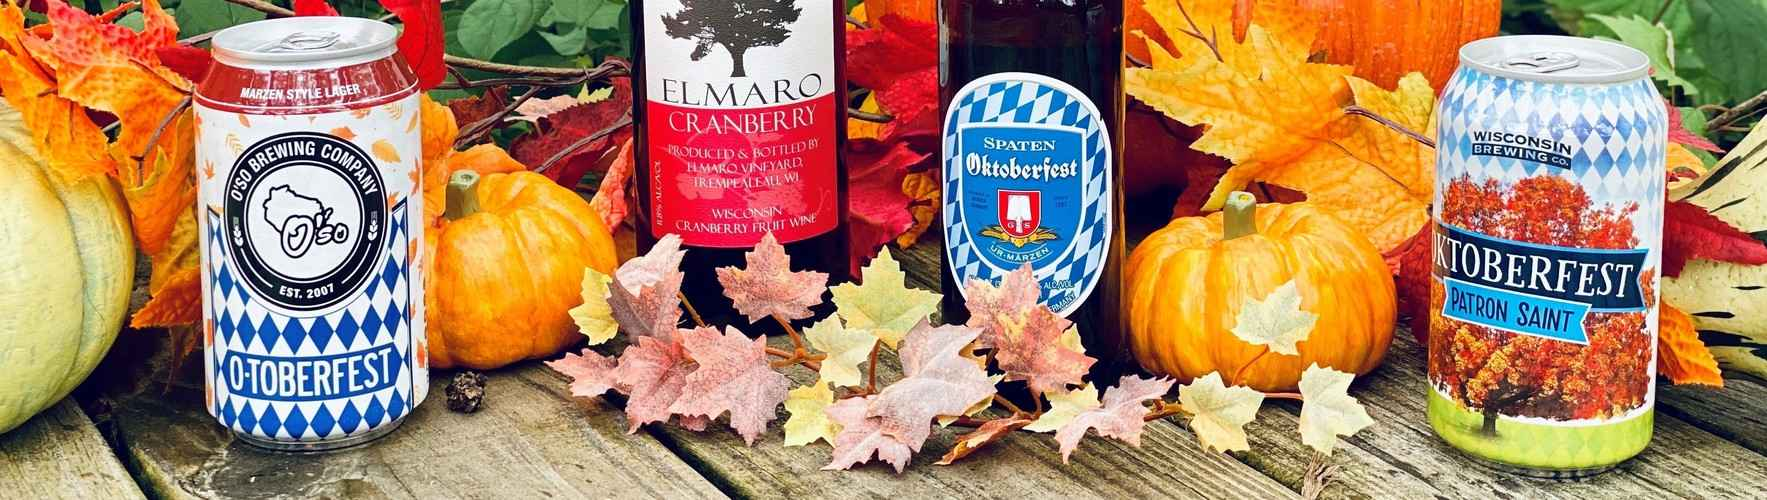 Octoberfest Beers for Bubolz image